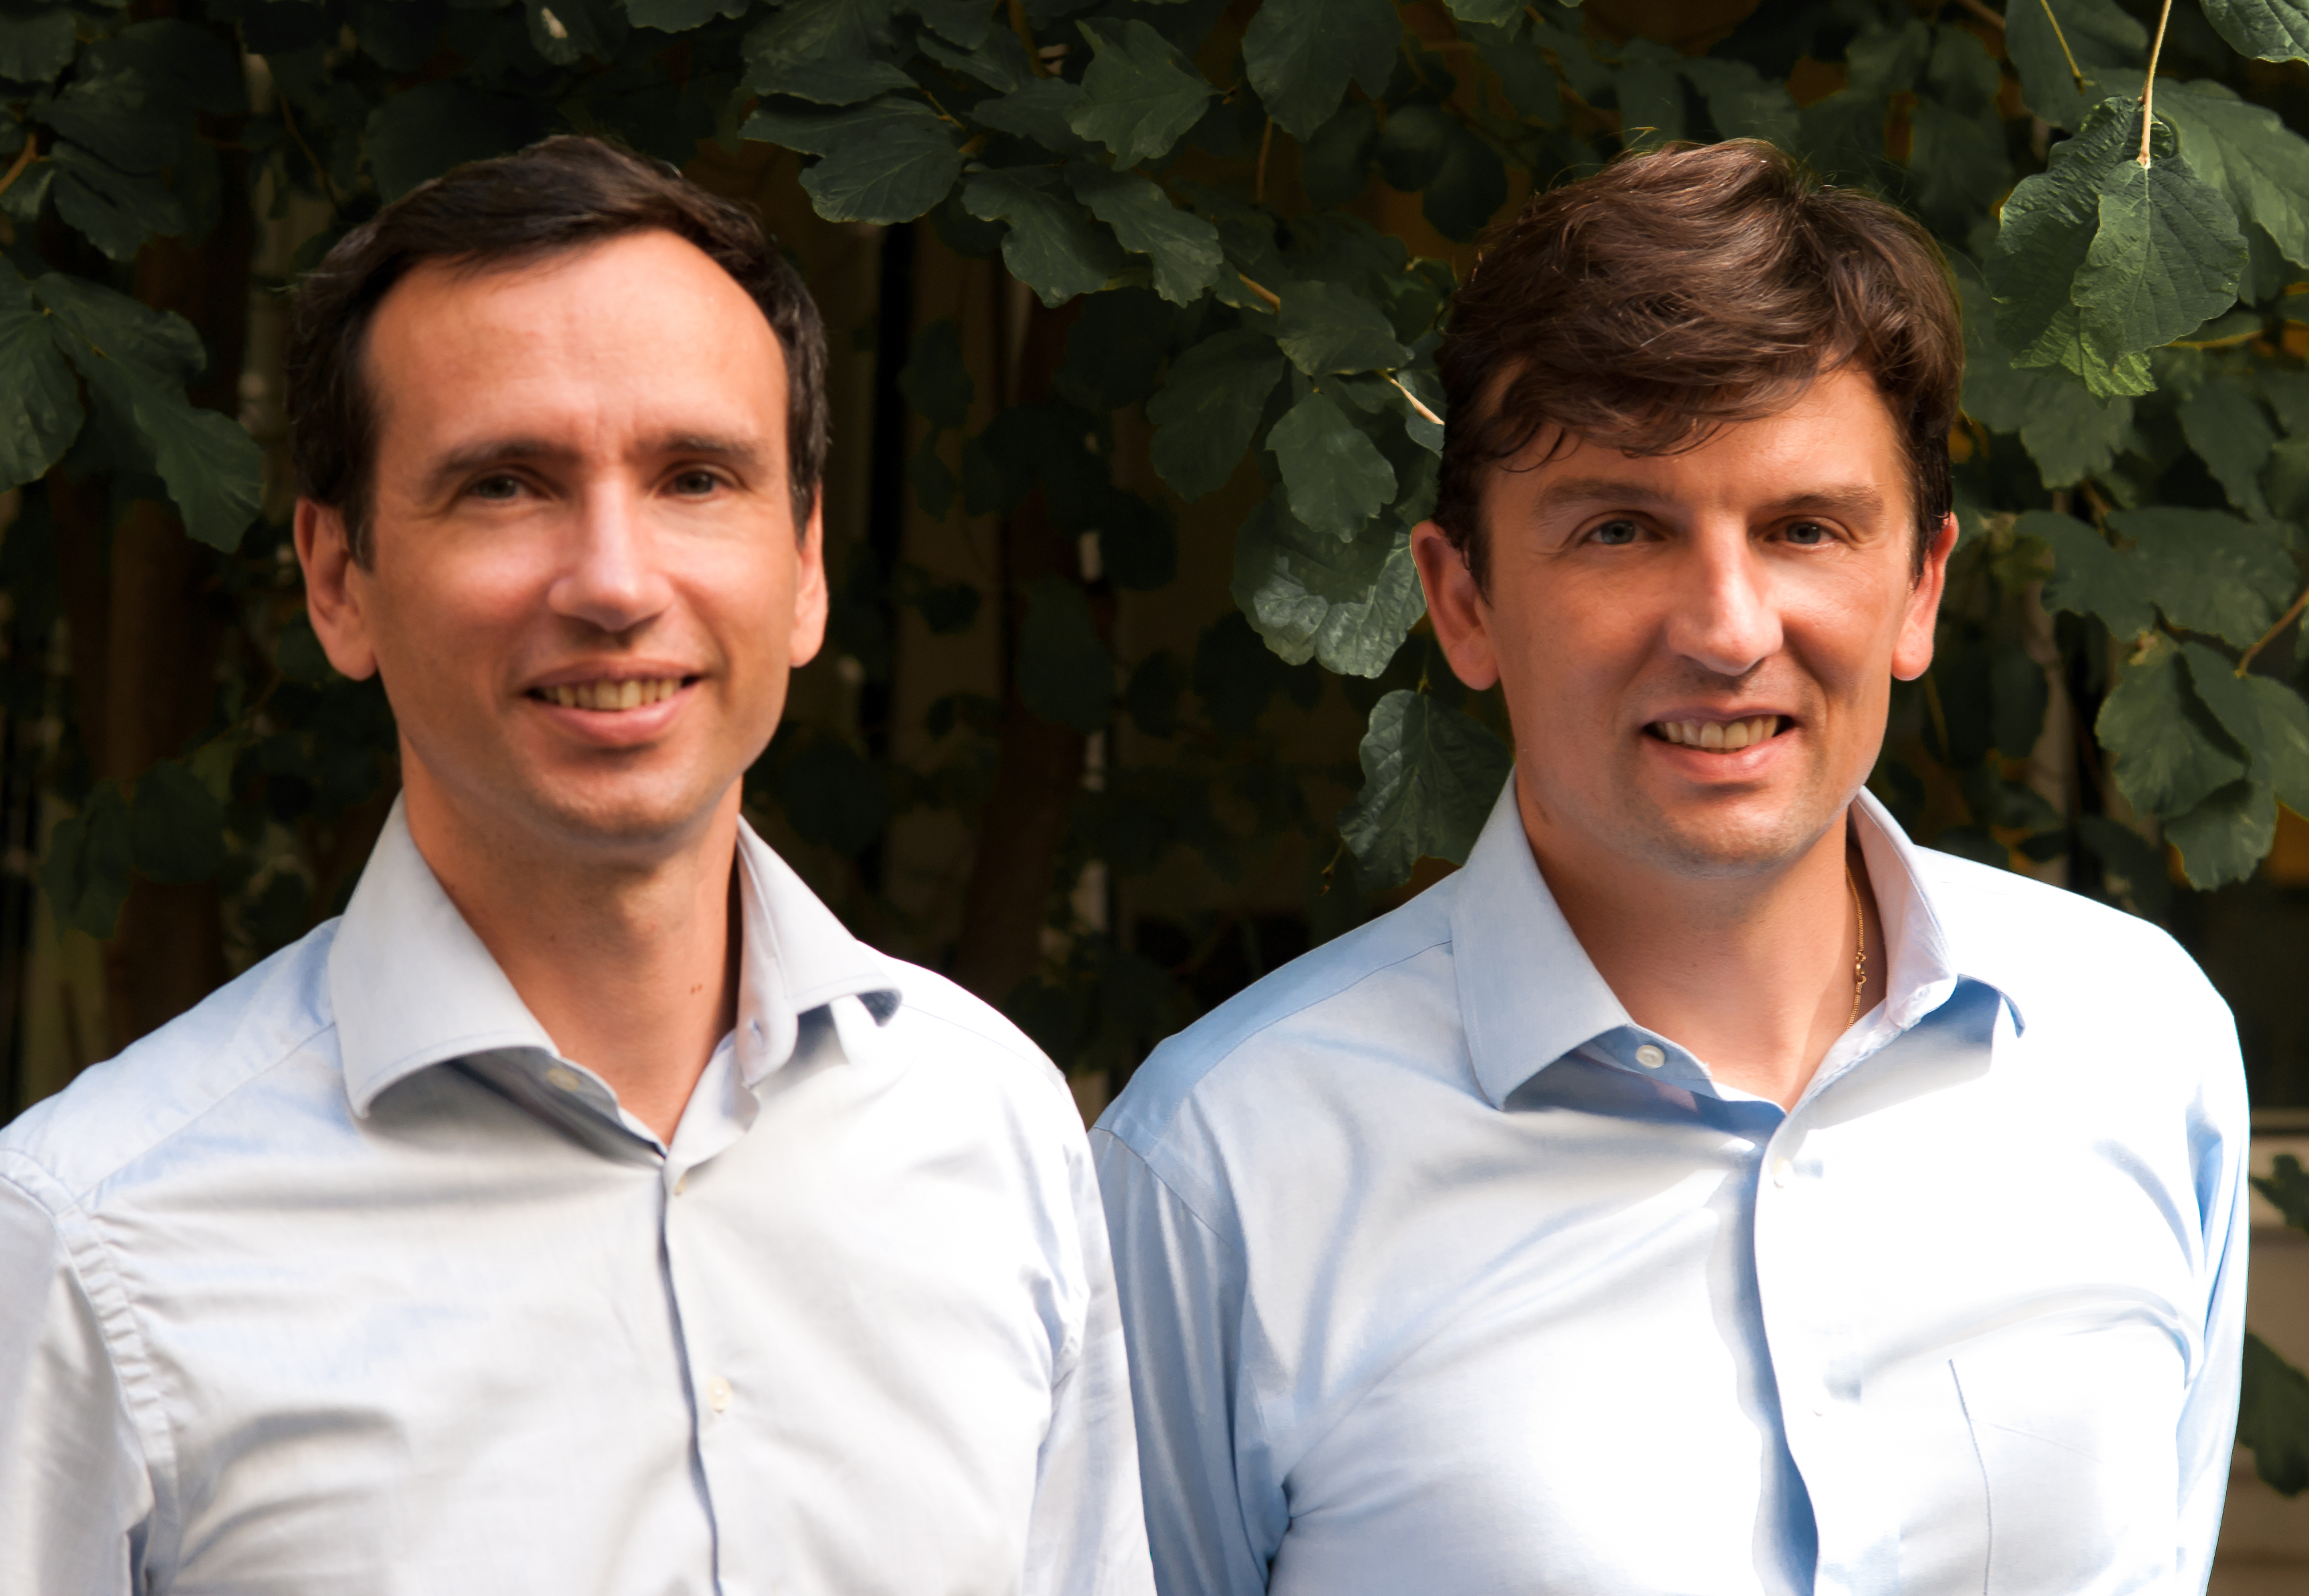 The founders of the French startup Wimi: Antoine Duboscqet and Lionel Roux